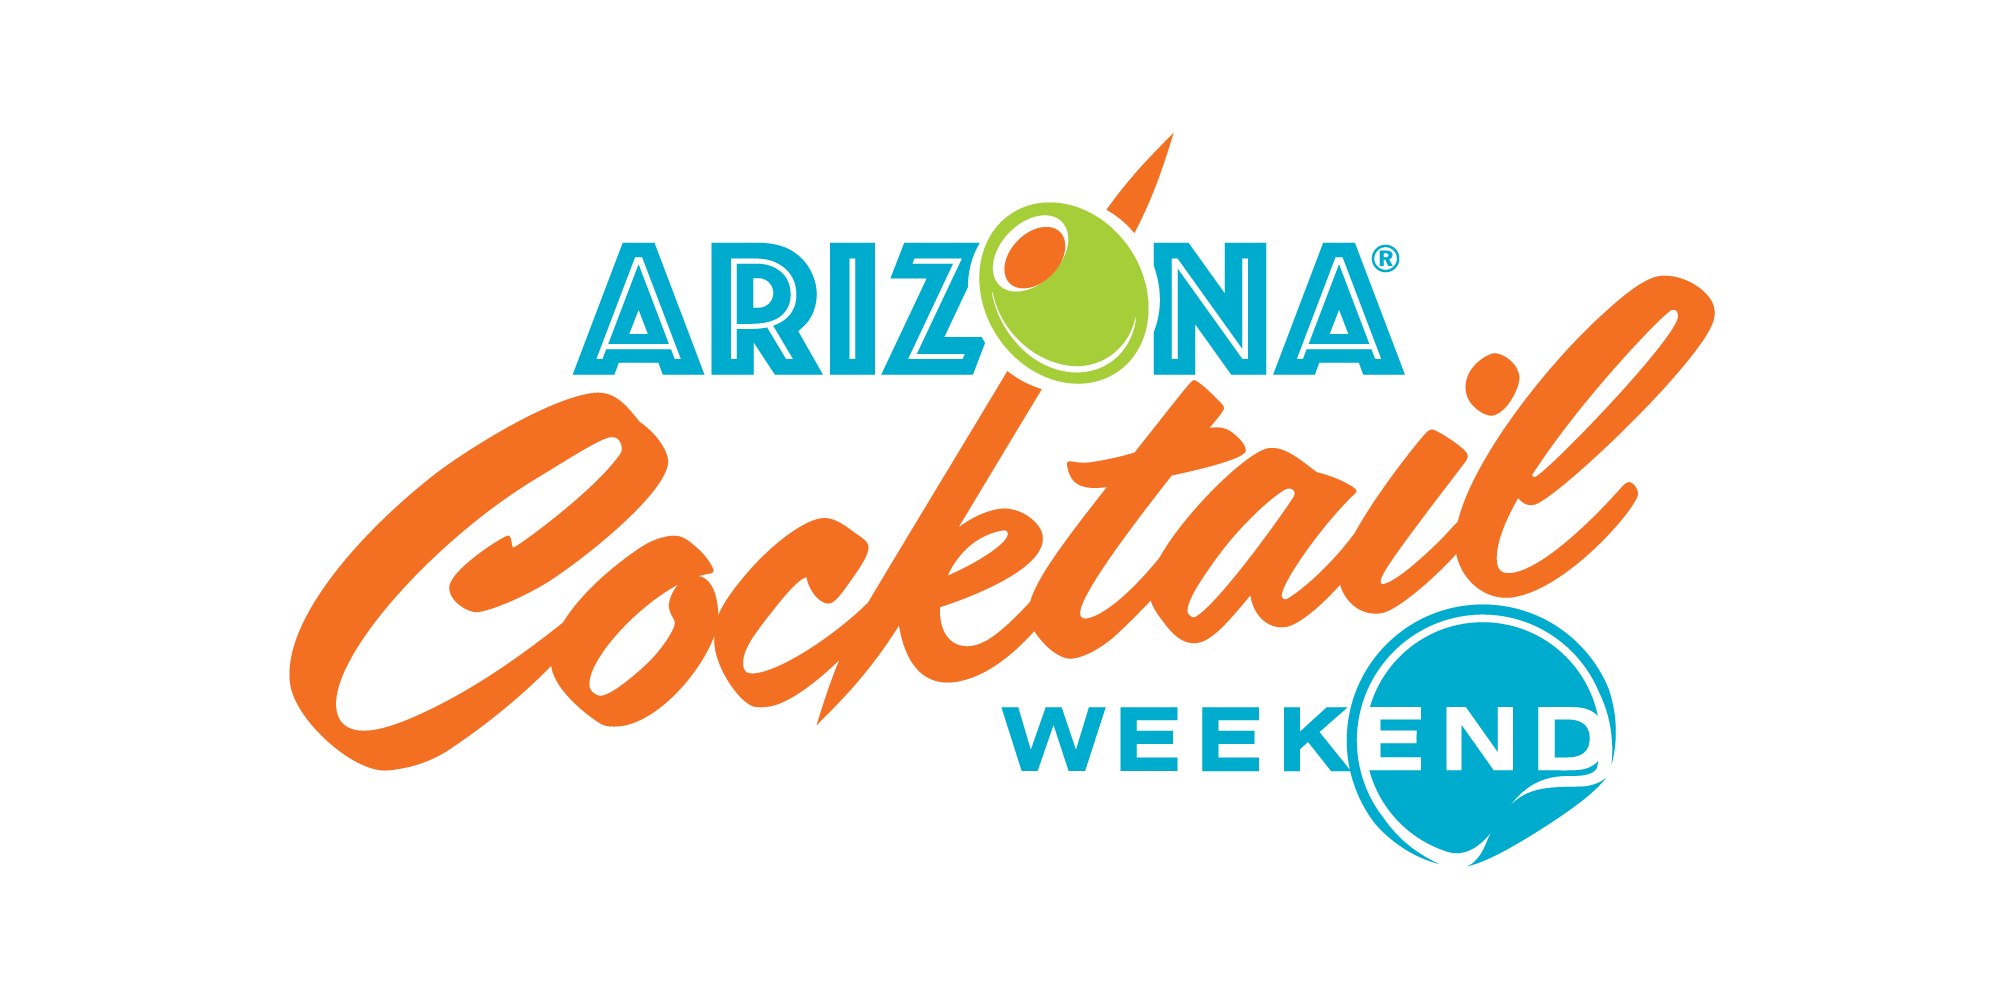 Week End Arizona Cocktail Weekend